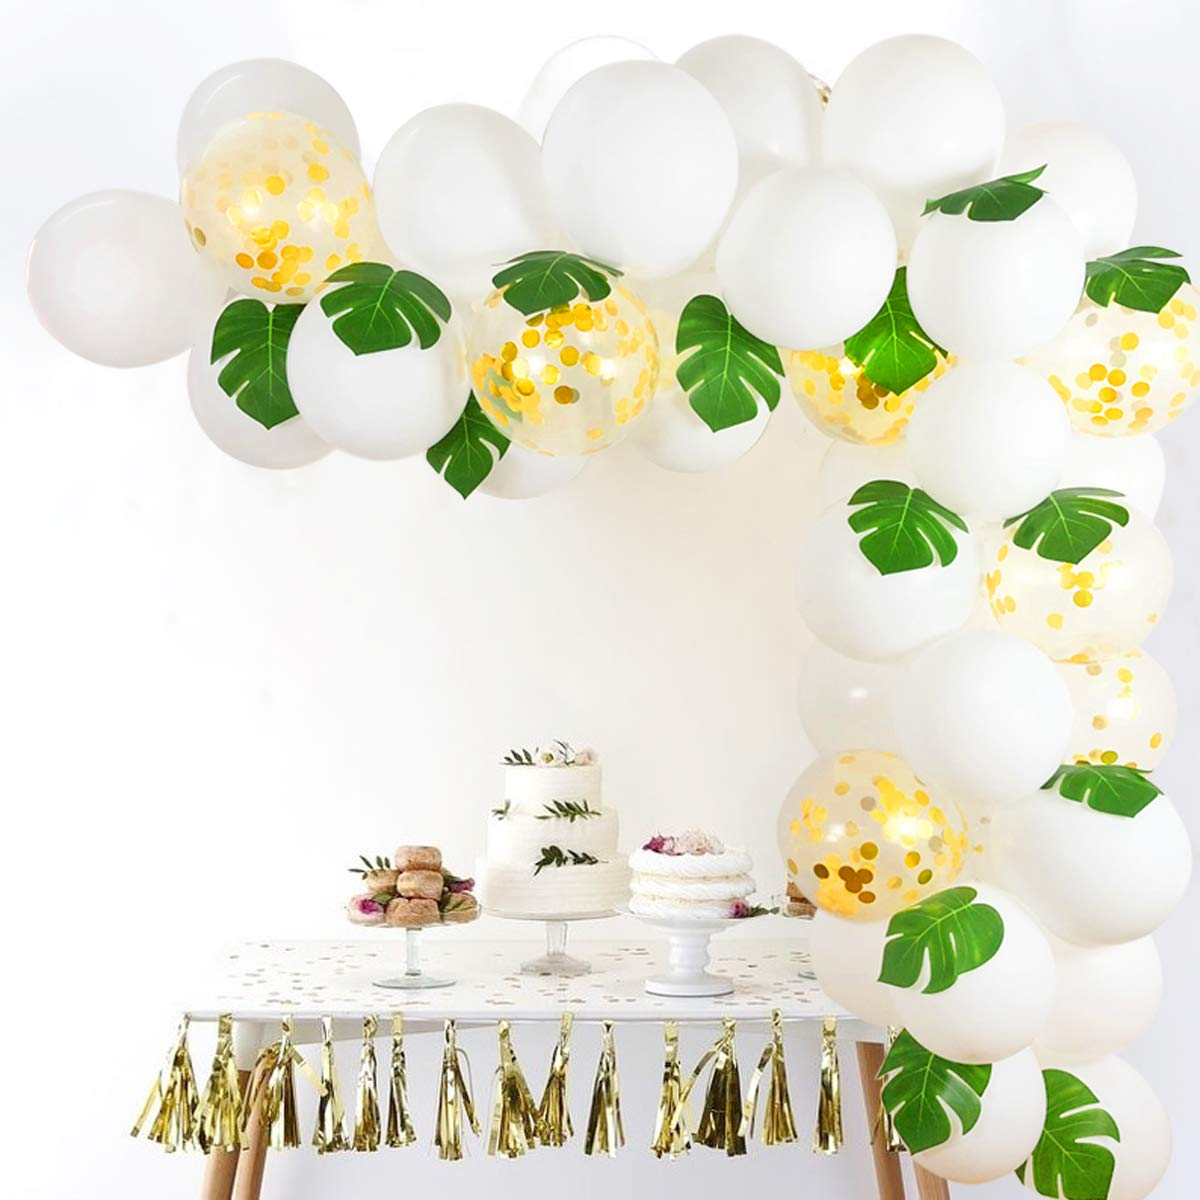 White Gold Confetti Balloons Arch, 12 Inch 40pcs Latex Balloons with 12pcs Palm Leaves 16 FT Balloon Strip Set for Baby Shower Bachelorette Party Supplies Backdrop Wedding Decorations